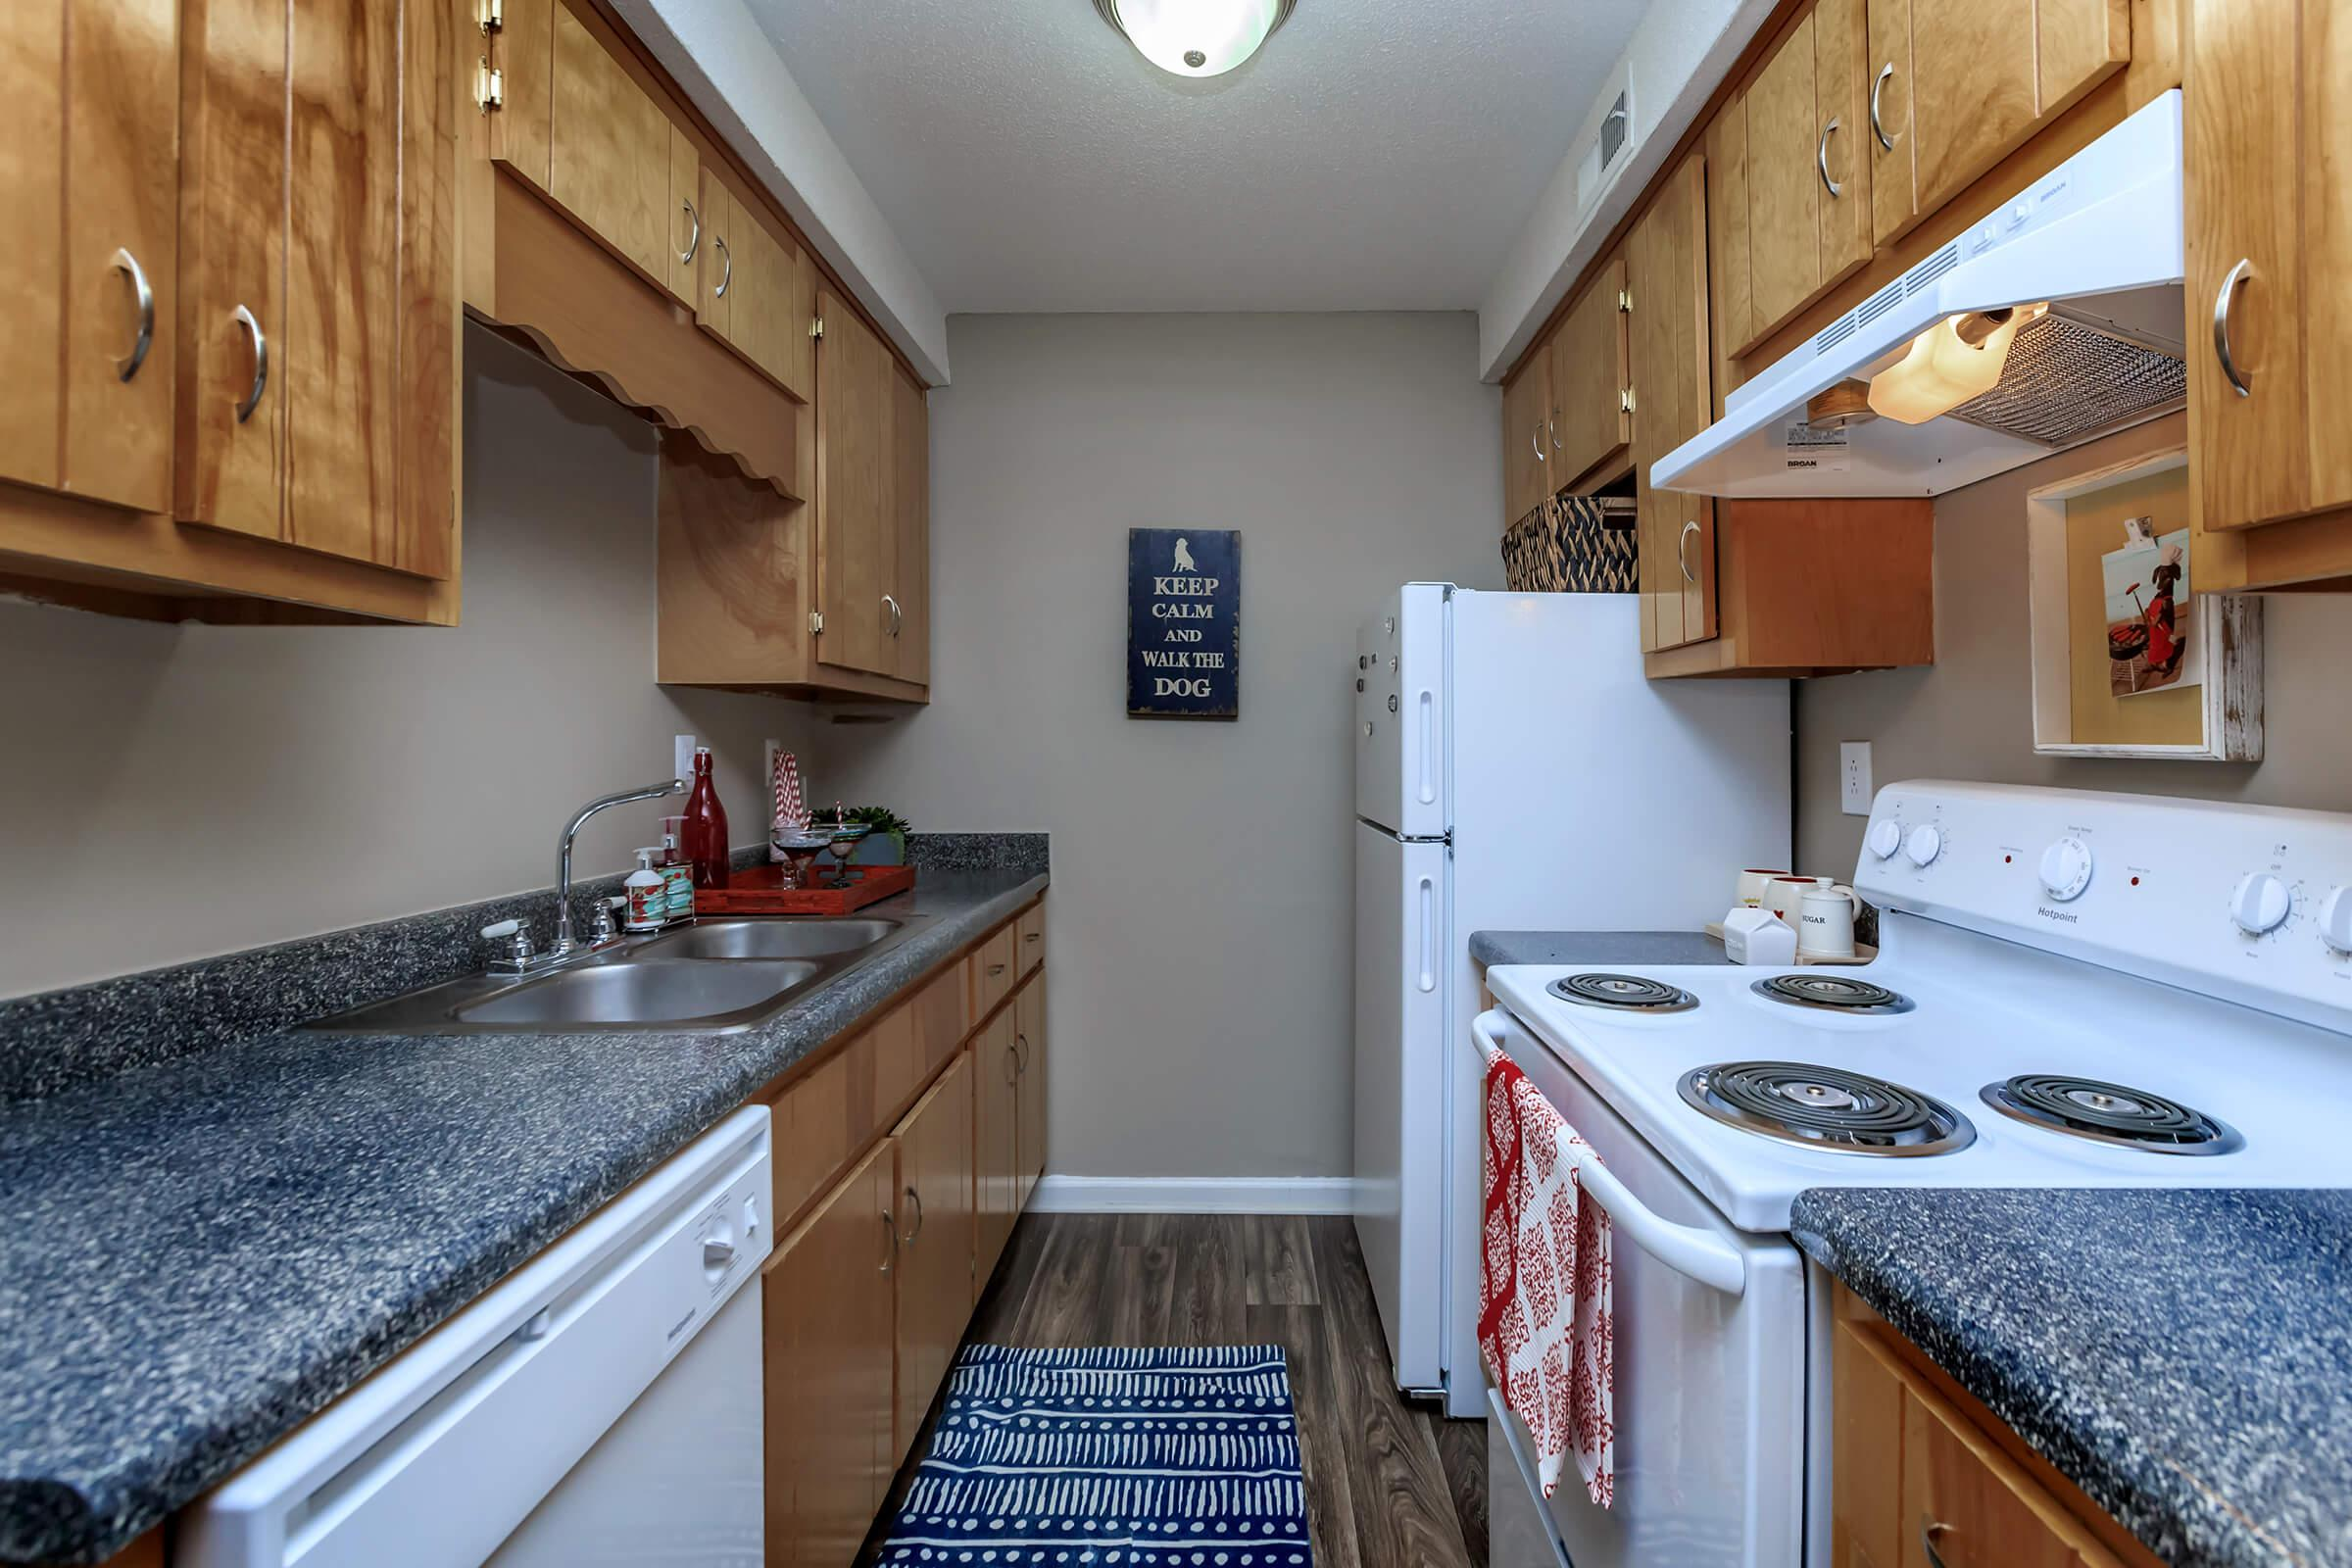 Our Kitchens come with a Refrigerator